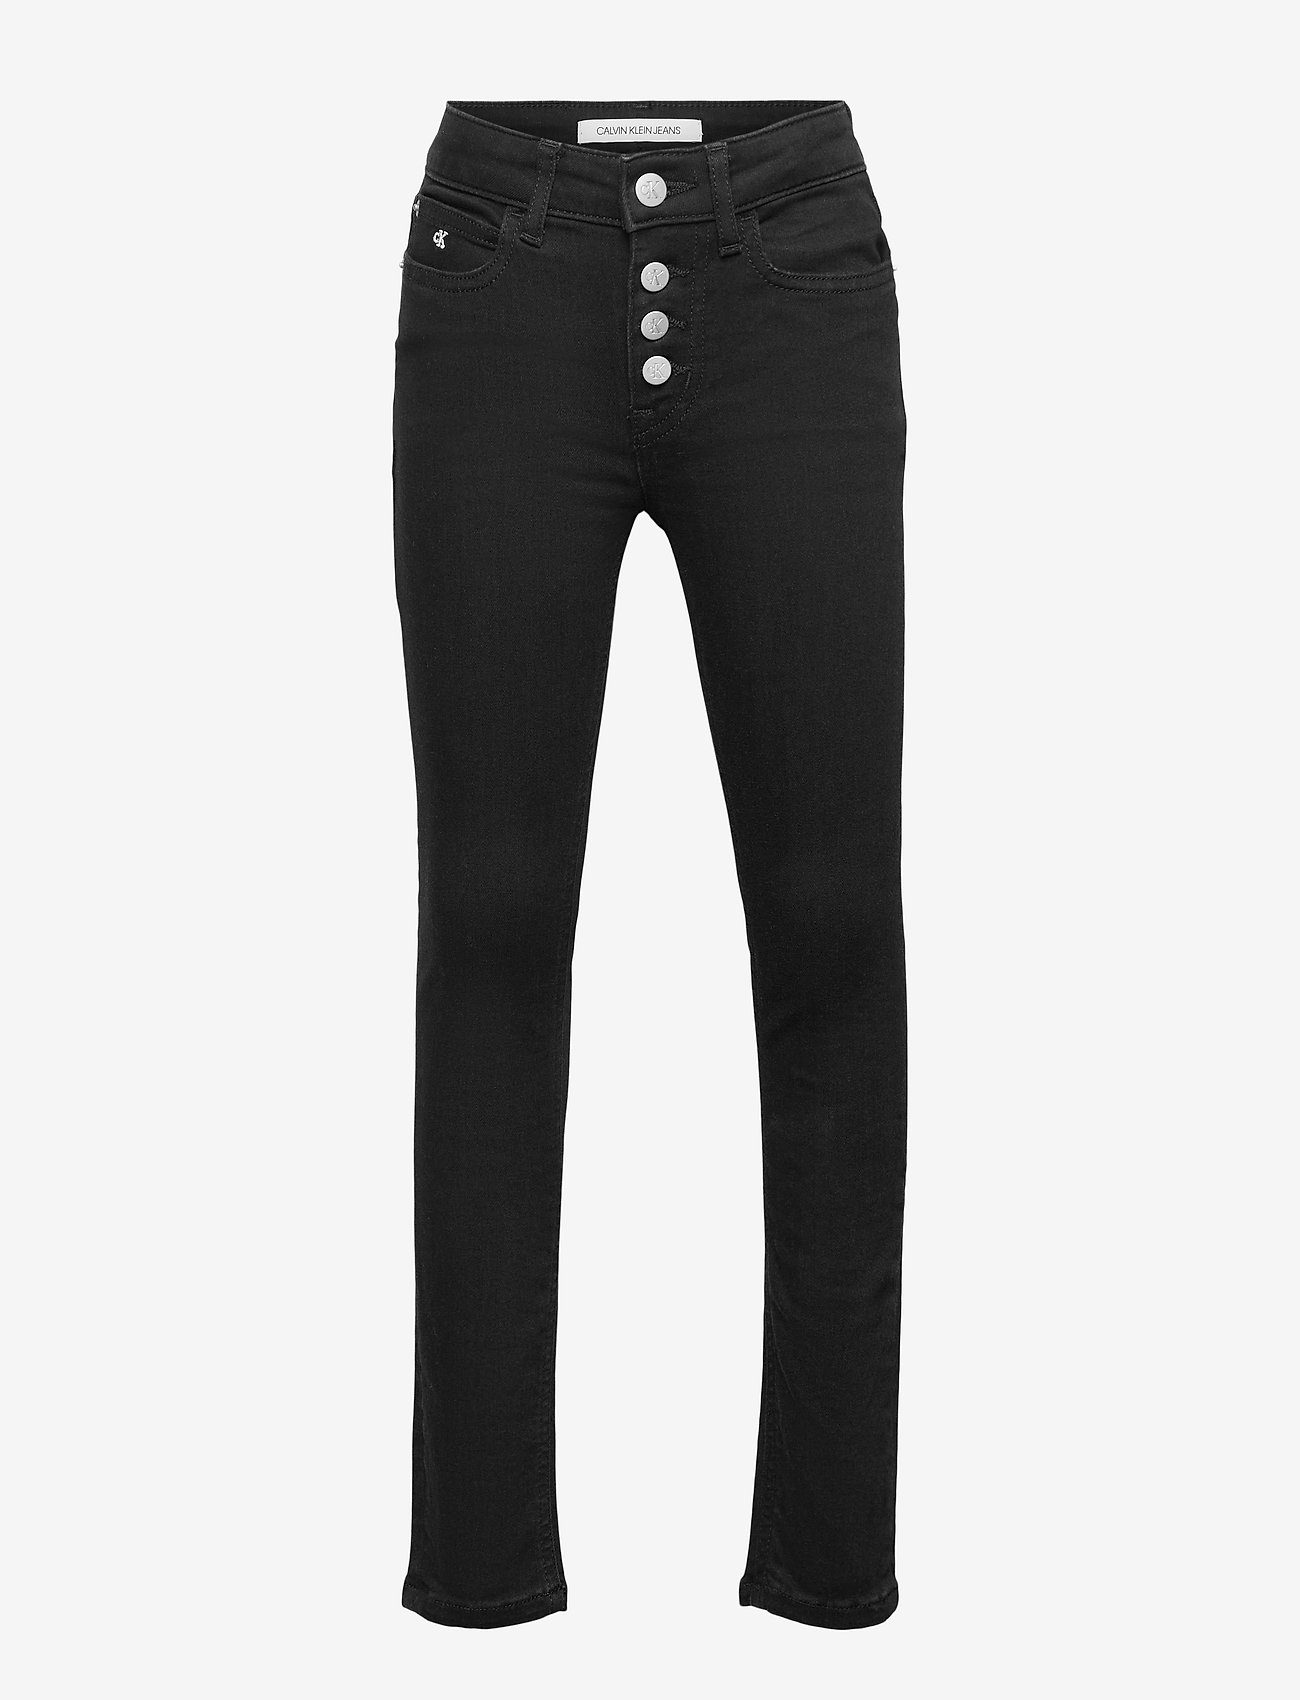 Calvin Klein - SKINNY HR CLEAN BLK STR - jeans - clean black stretch - 0